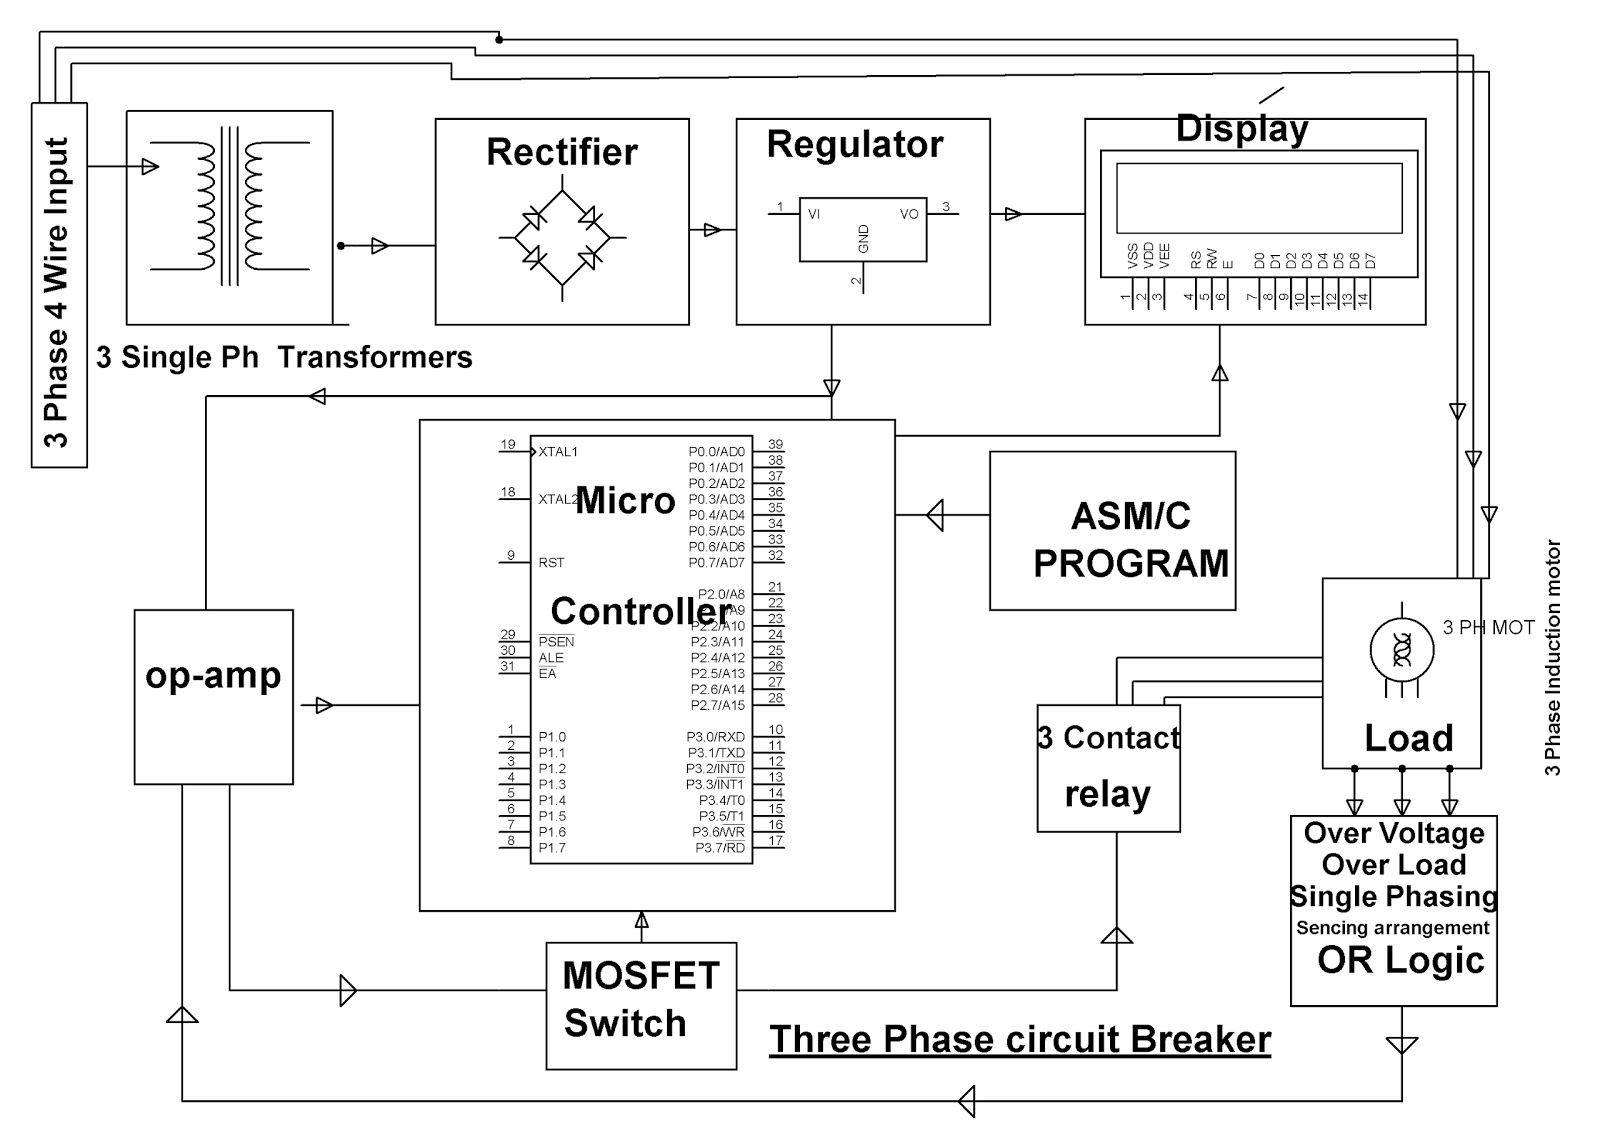 Wiring Diagram Of Star Delta Starter With Timer Library Wye Manual Three Phase Using Relays And Adjustable Automatic